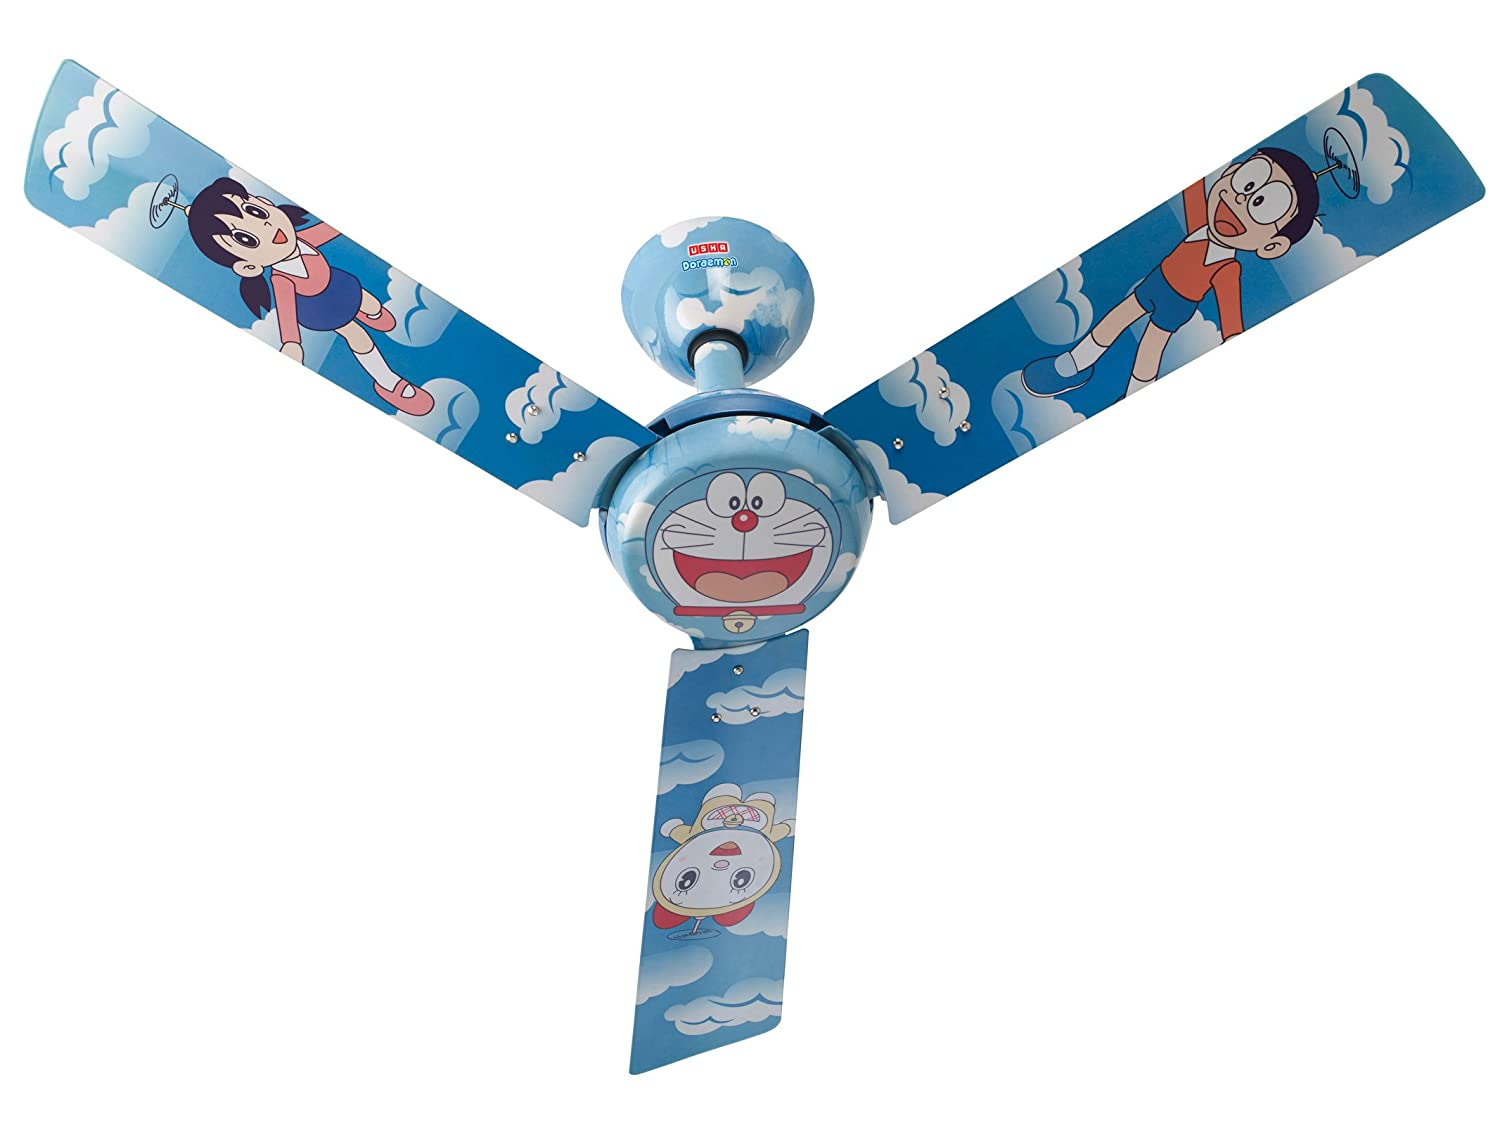 Buy usha doraemon copter 1200mm kids ceiling fan without regulator buy usha doraemon copter 1200mm kids ceiling fan without regulator multi color online at low prices in india amazon audiocablefo